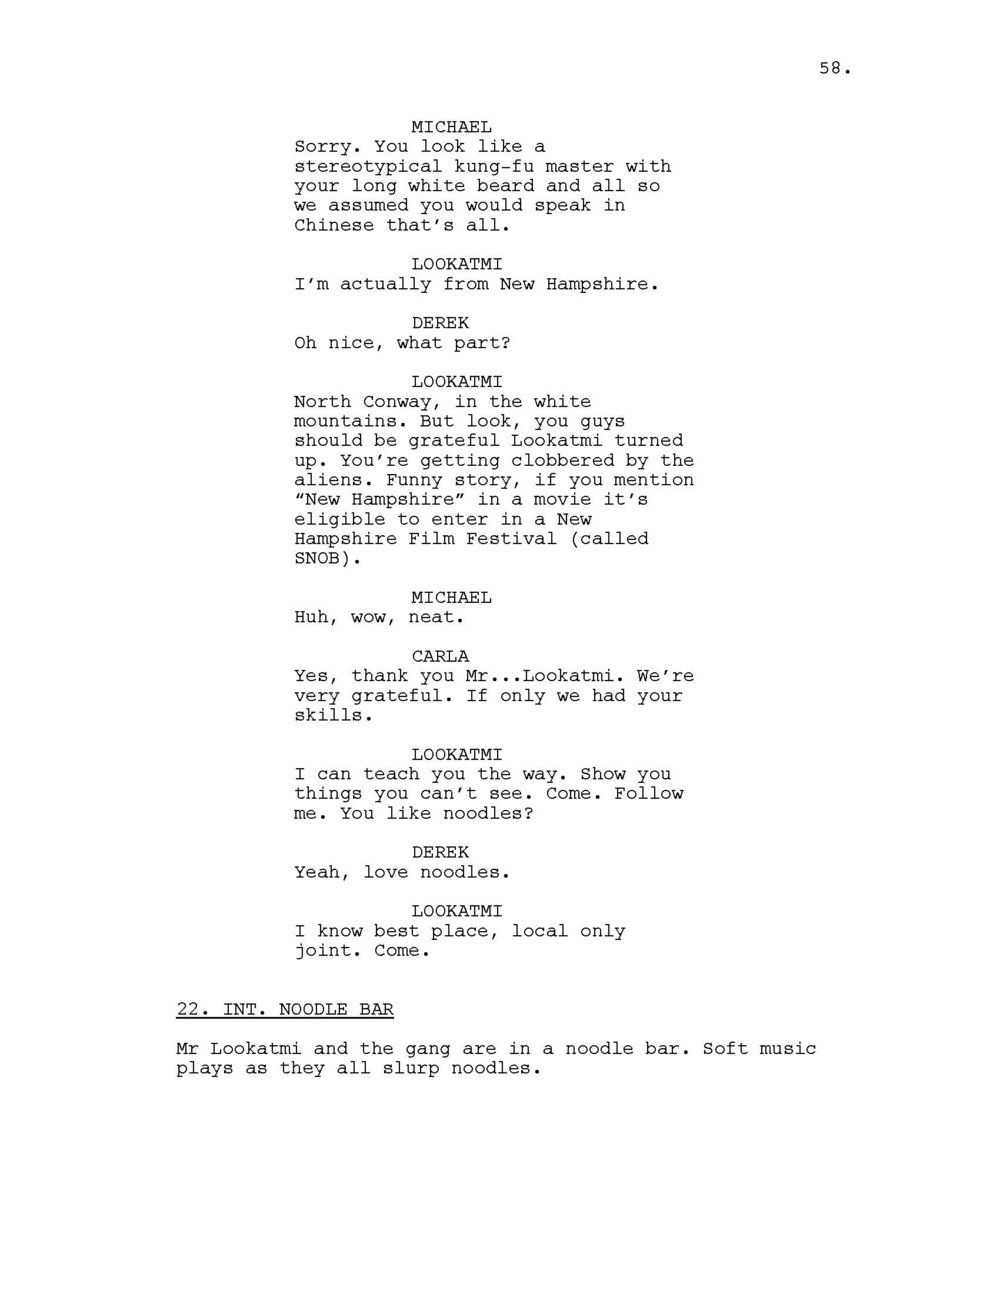 INVISIBLE WORLD SCRIPT_Page_059.jpg